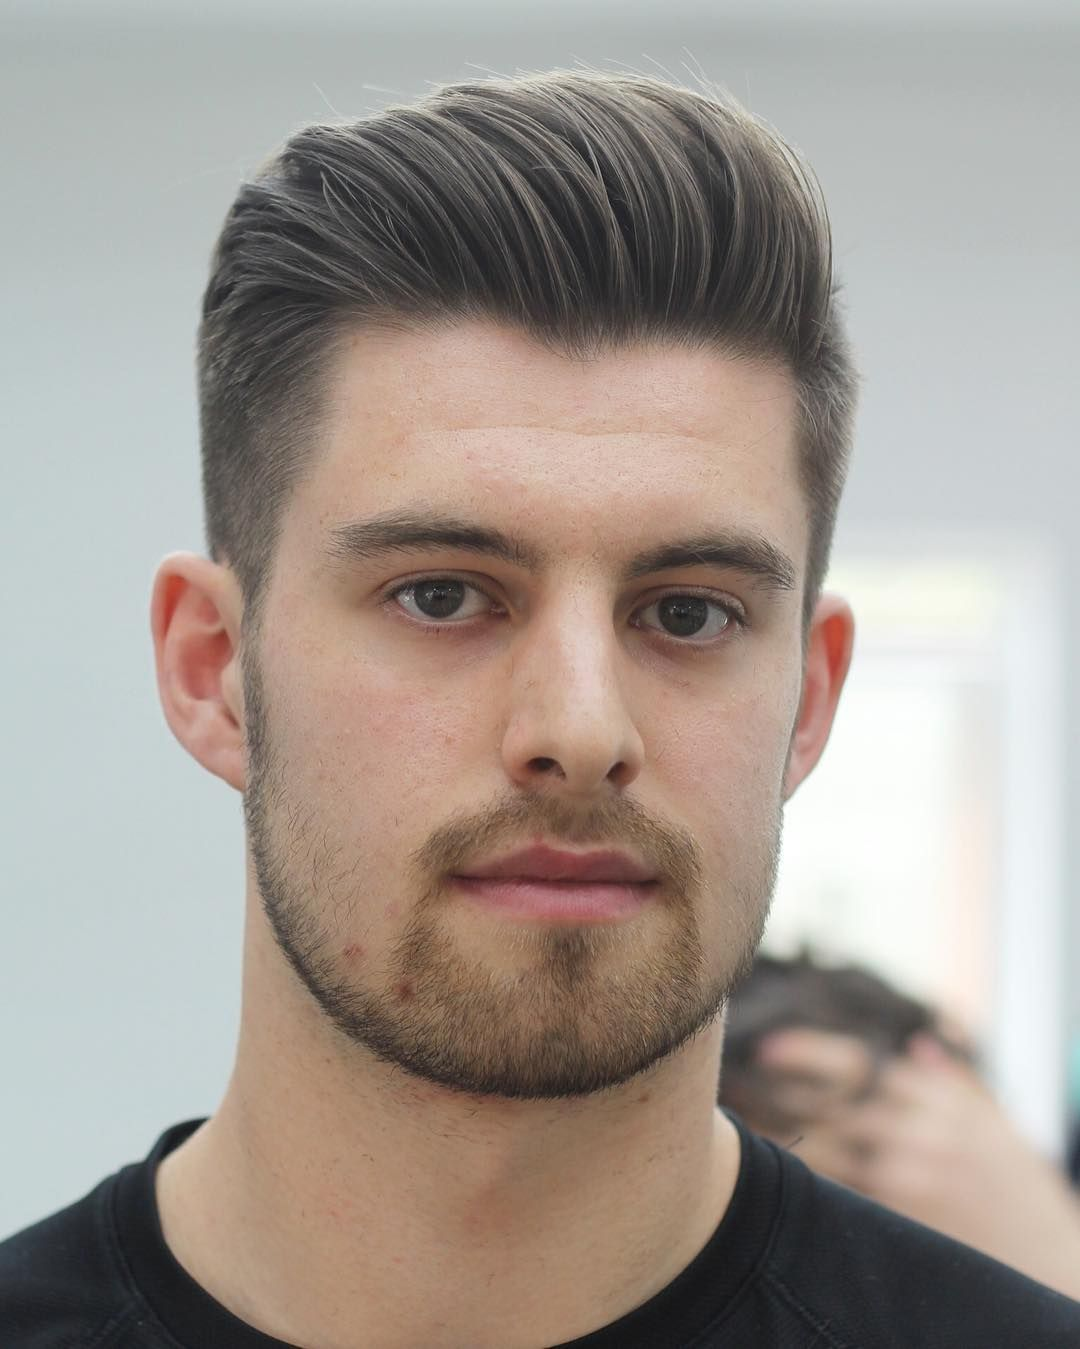 Medium Hairstyles - Blow Dried Back Medium Length Hairstyle  Mens